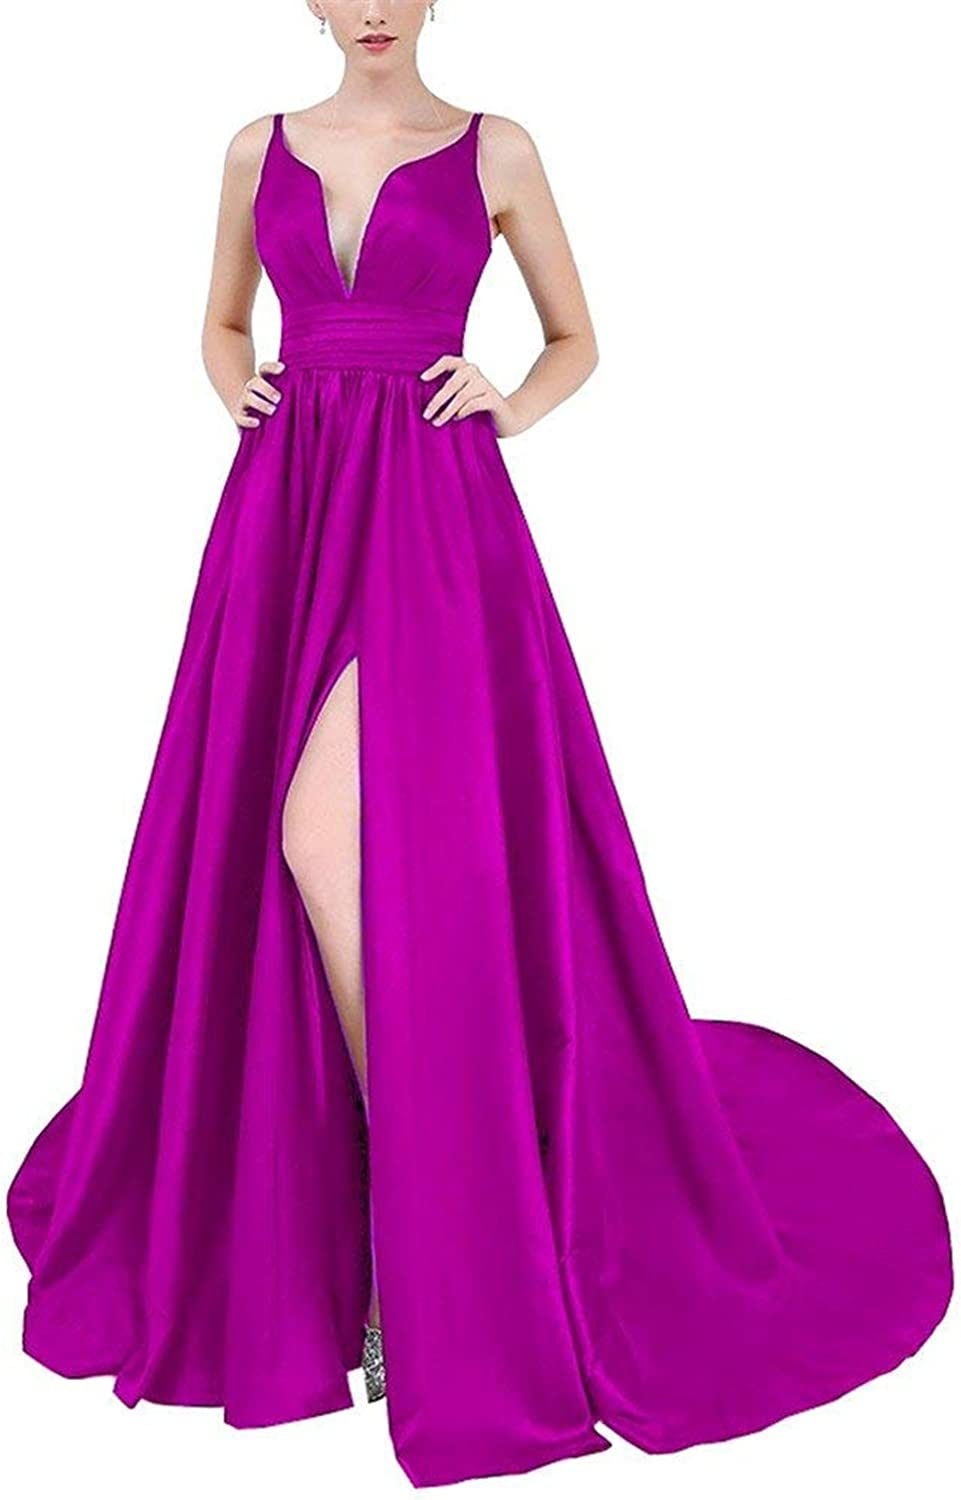 JQLD Women's Satin Double V Neck Evening Dresses 2018 Sexy High Split Prom Gown Formal Long